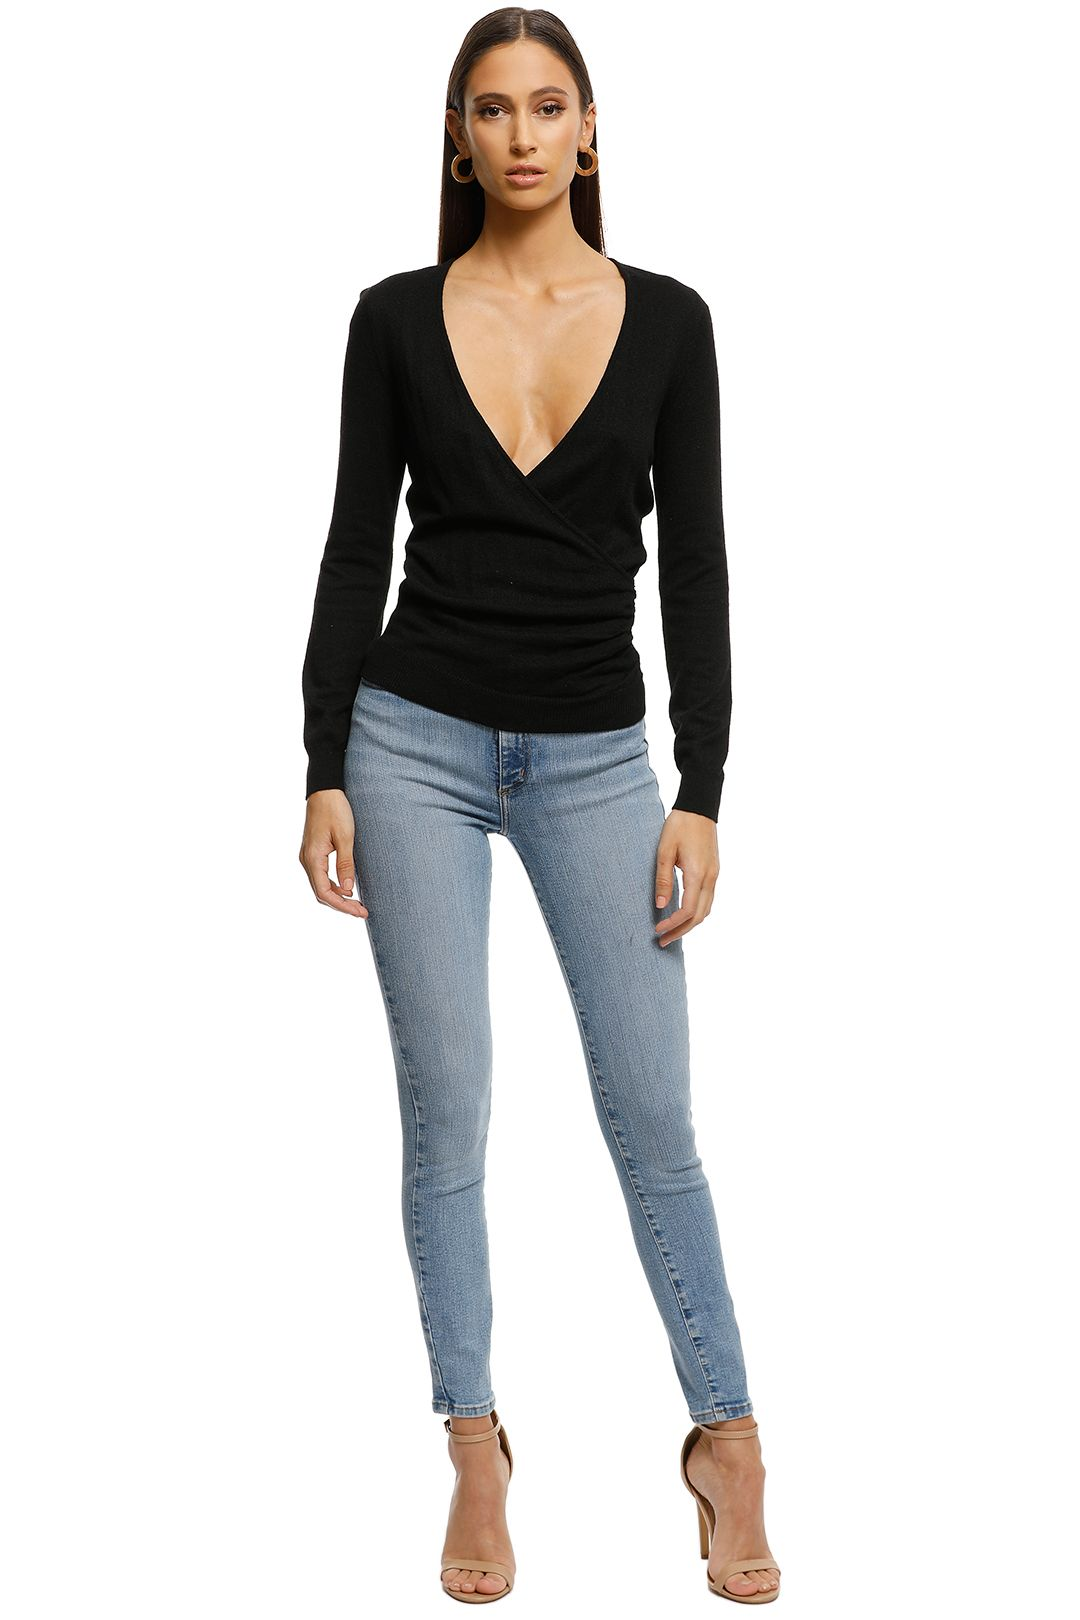 Rodeo Show - Stevie Knit - Black - Front